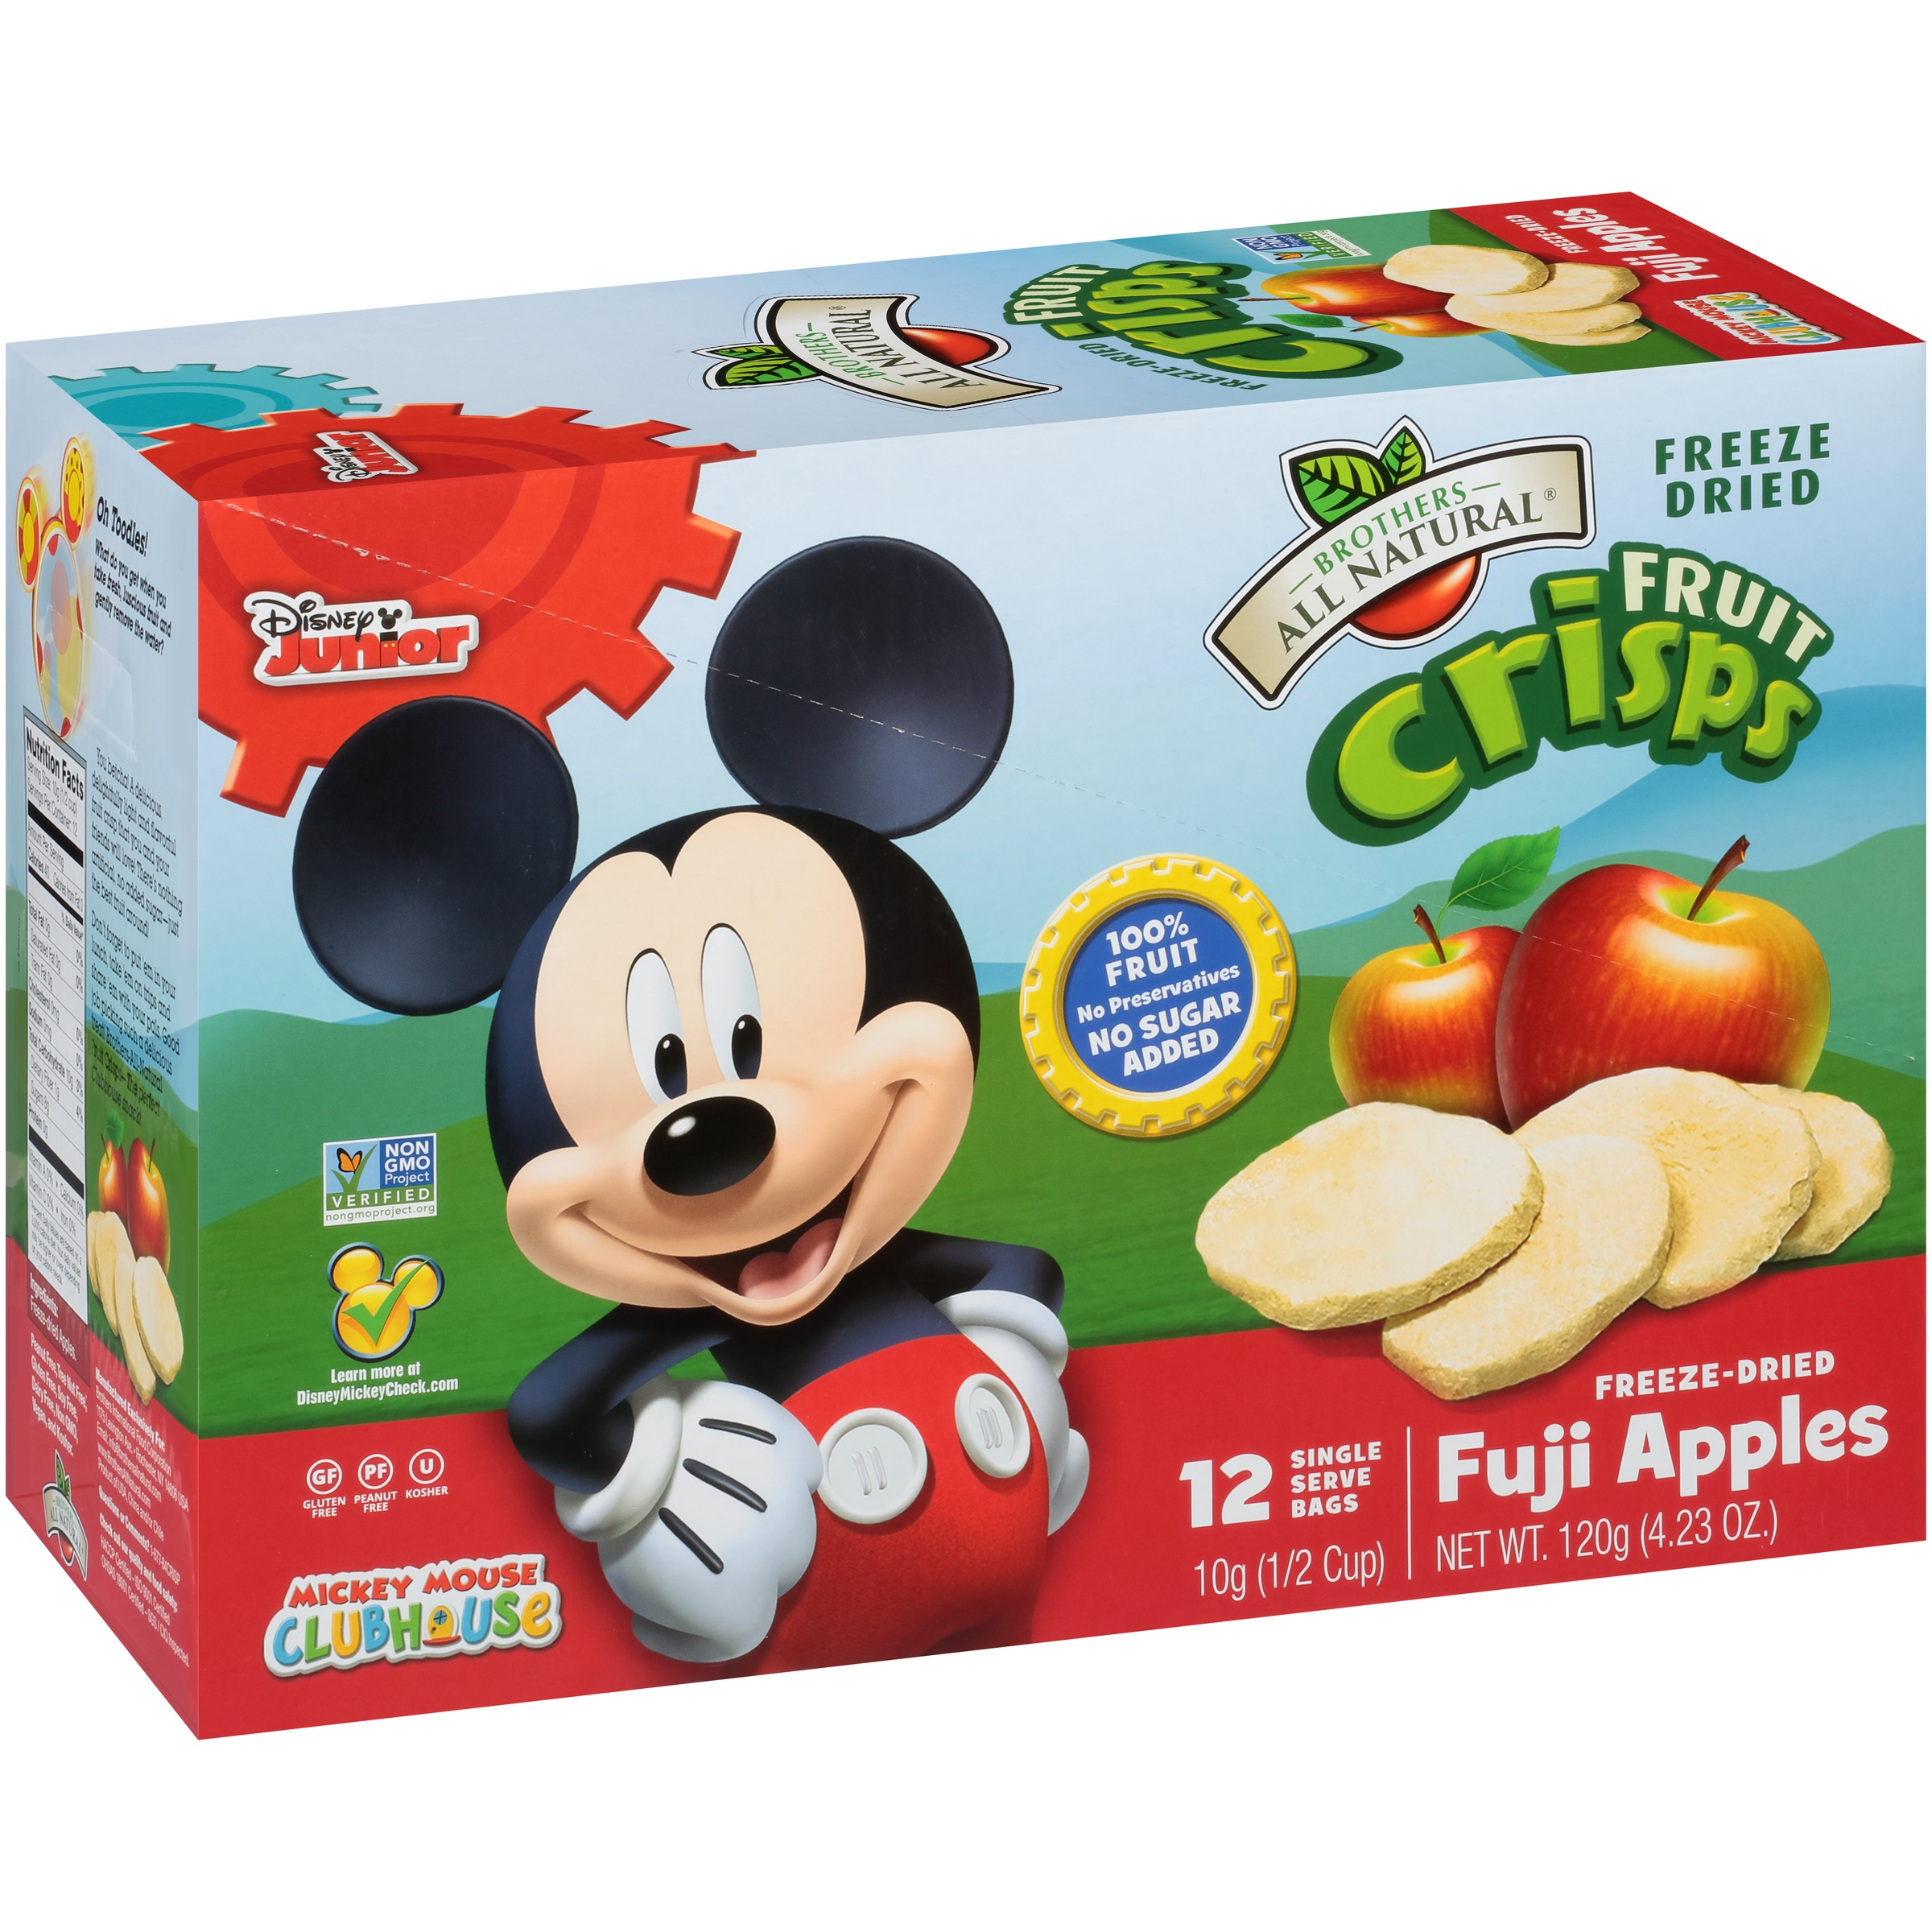 Brothers All Natural® Mickey Mouse Freeze-Dried Fruit Crisps, Fuji Apples, 4.23 Oz, 12 Ct